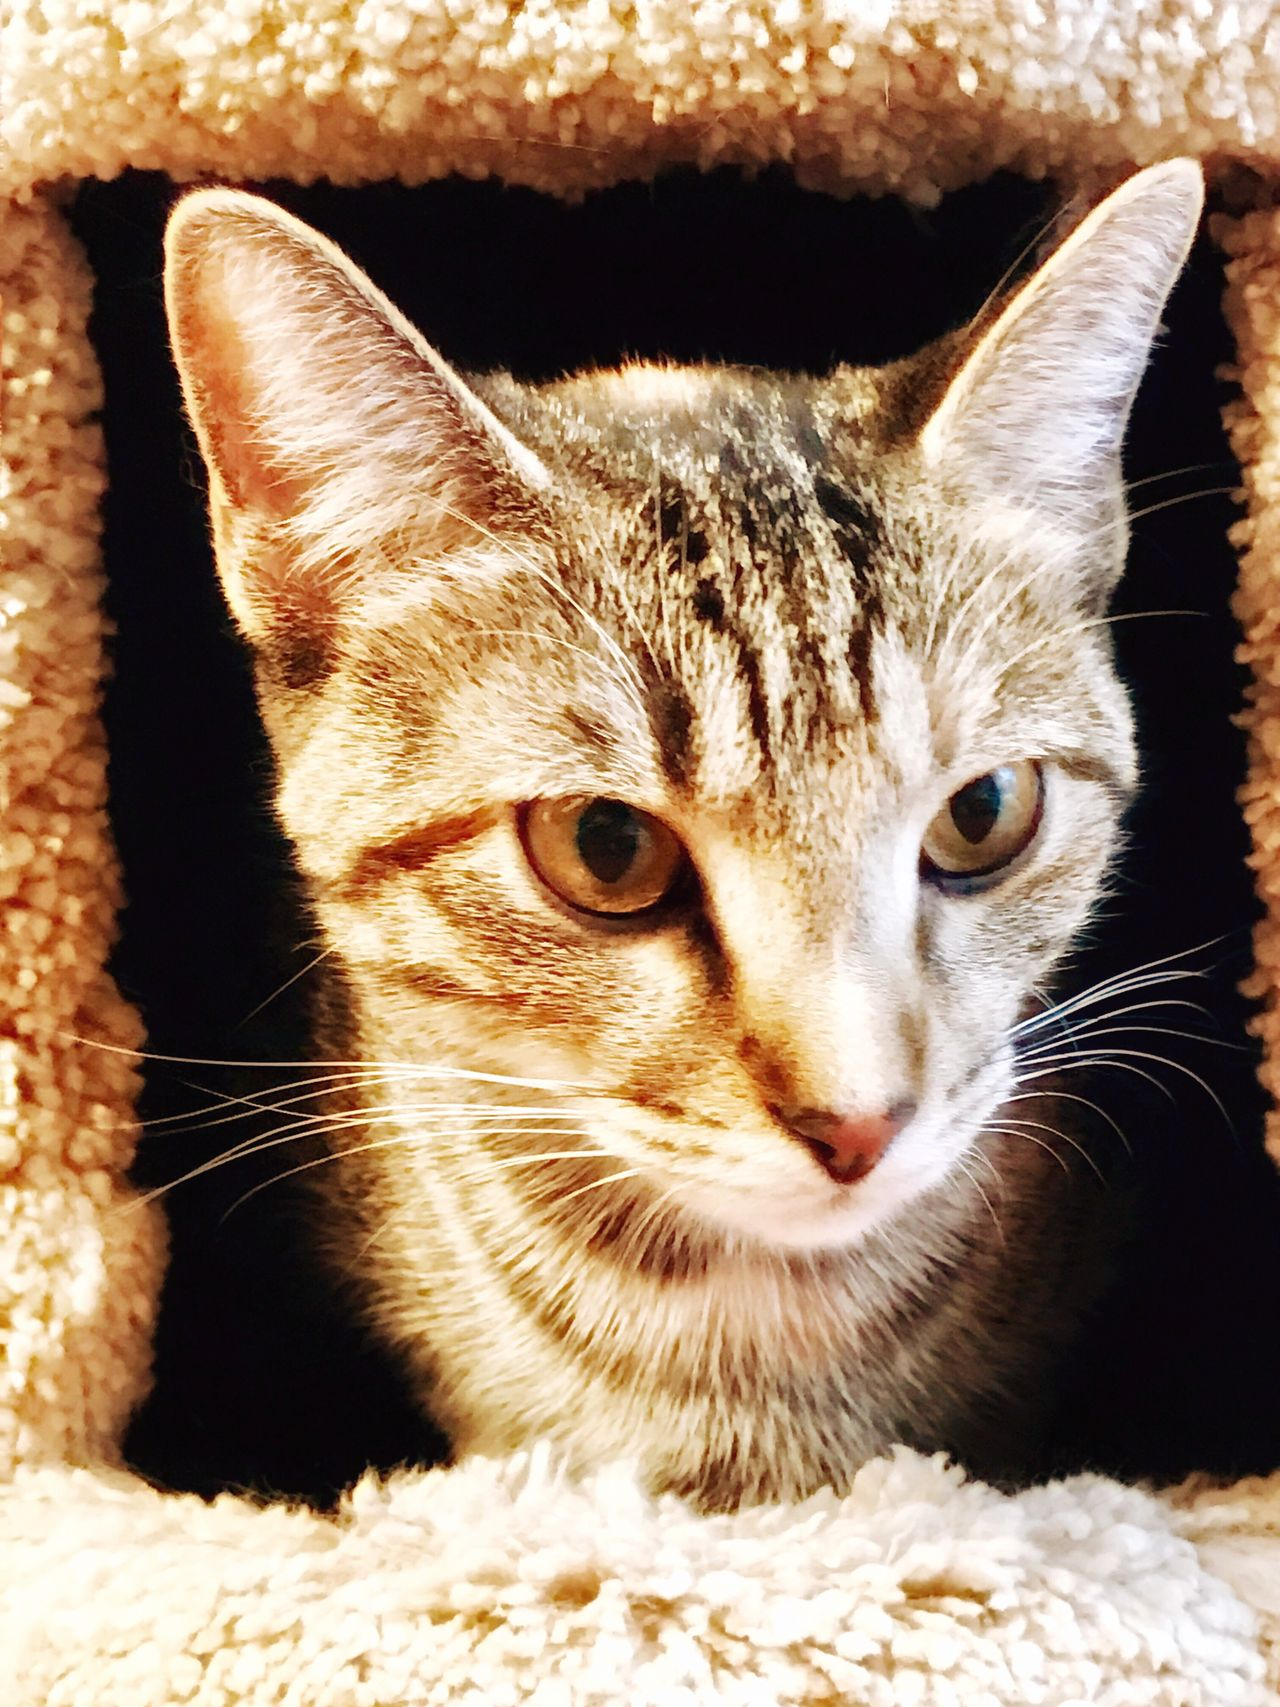 Portrait of beautiful one-year-old domestic or American shorthair tabby cat Domestic Cat Domestic Animals Pets Animal Themes One Animal Mammal Feline Looking At Camera Portrait Cat No People Whisker Close-up Outdoors Day Animal Behavior Yellow Eyes Cute Cats gold eyes Stock Photo Picture Copper Green Eyes Whiskers Companion Pet Domestic Cats One Animal No People Shorthaired Medium Fur American Feline Feral Stray Indoor Outdoor House Home Cutest Cat Of Day Cat Lover Breeds Carnivora Zoology Tabby Tomcat Mammal Playful C Lover Week Month Year